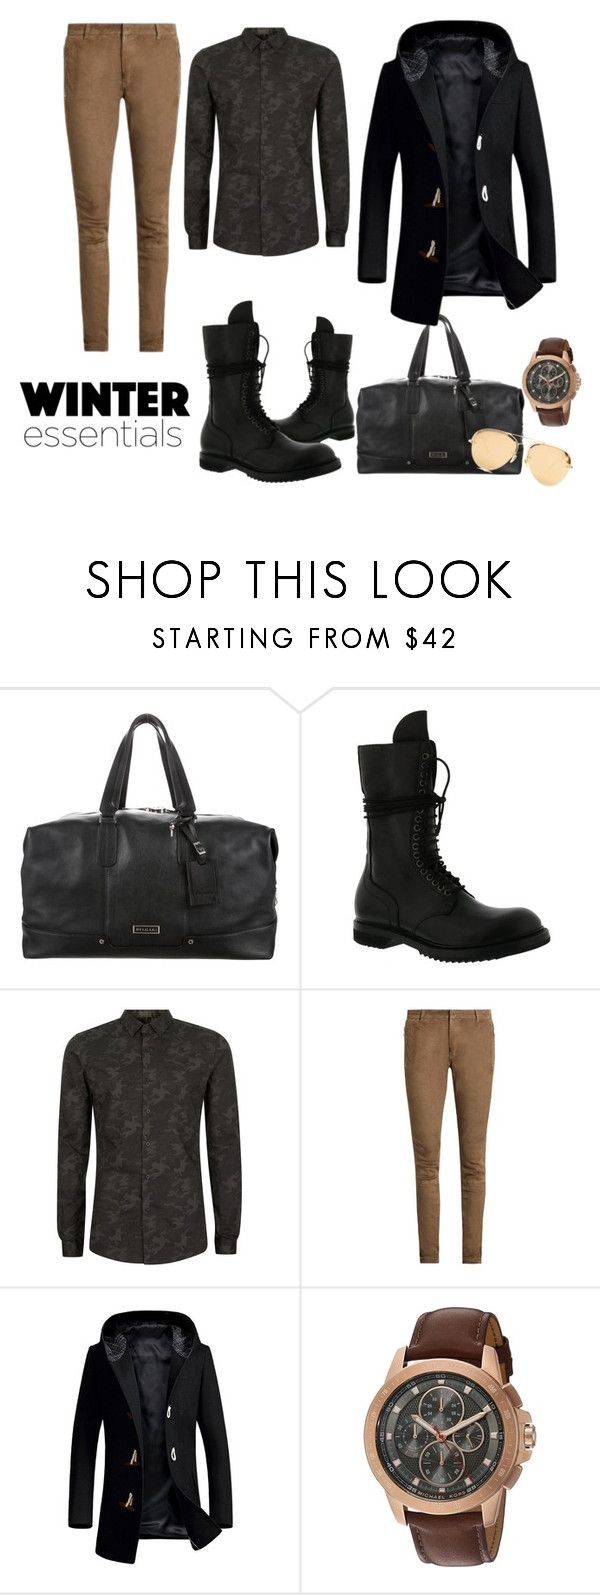 """""""#style #iconic #chic #mystyle #classy #elegant #winteressintial #winter #fashion #menswear #mensoutfit #outfit"""" by ladypeacful ❤ liked on Polyvore featuring Bulgari, Rick Owens, Topman, Balmain, Michael Kors, Linda Farrow, men's fashion and menswear"""